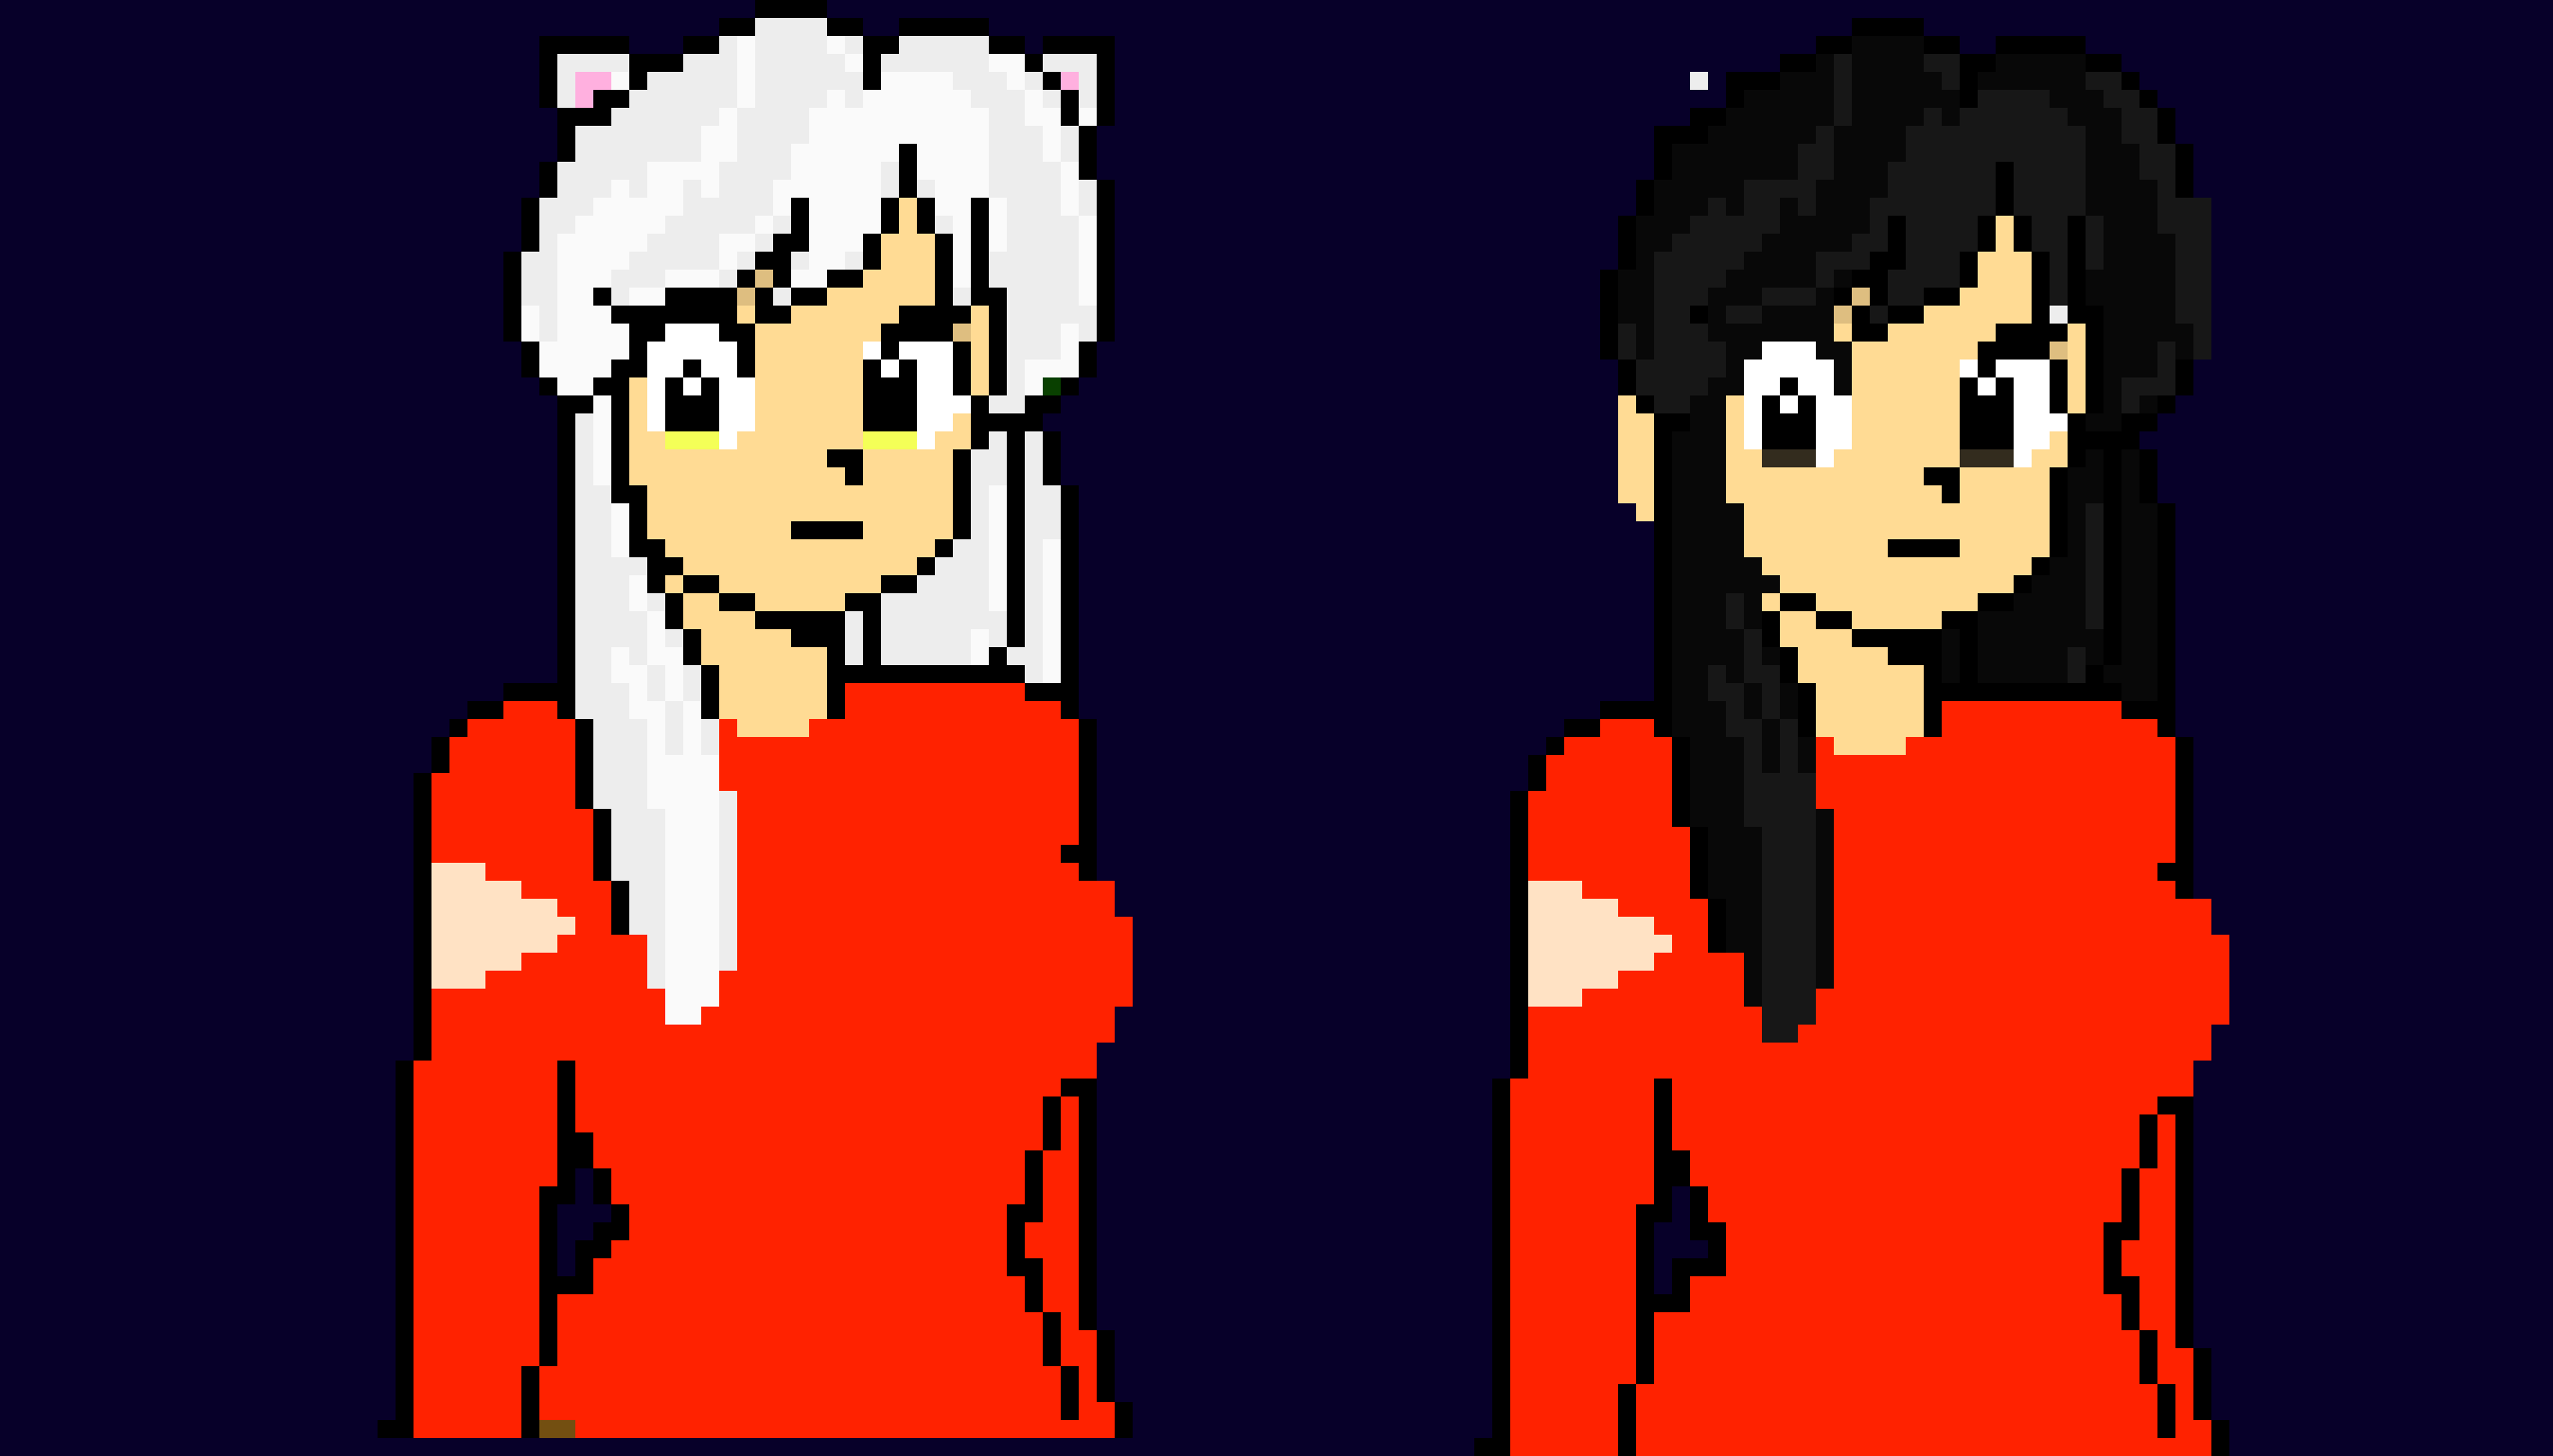 Half Demon Inuyasha Human And Demon Form Pixel Art Maker